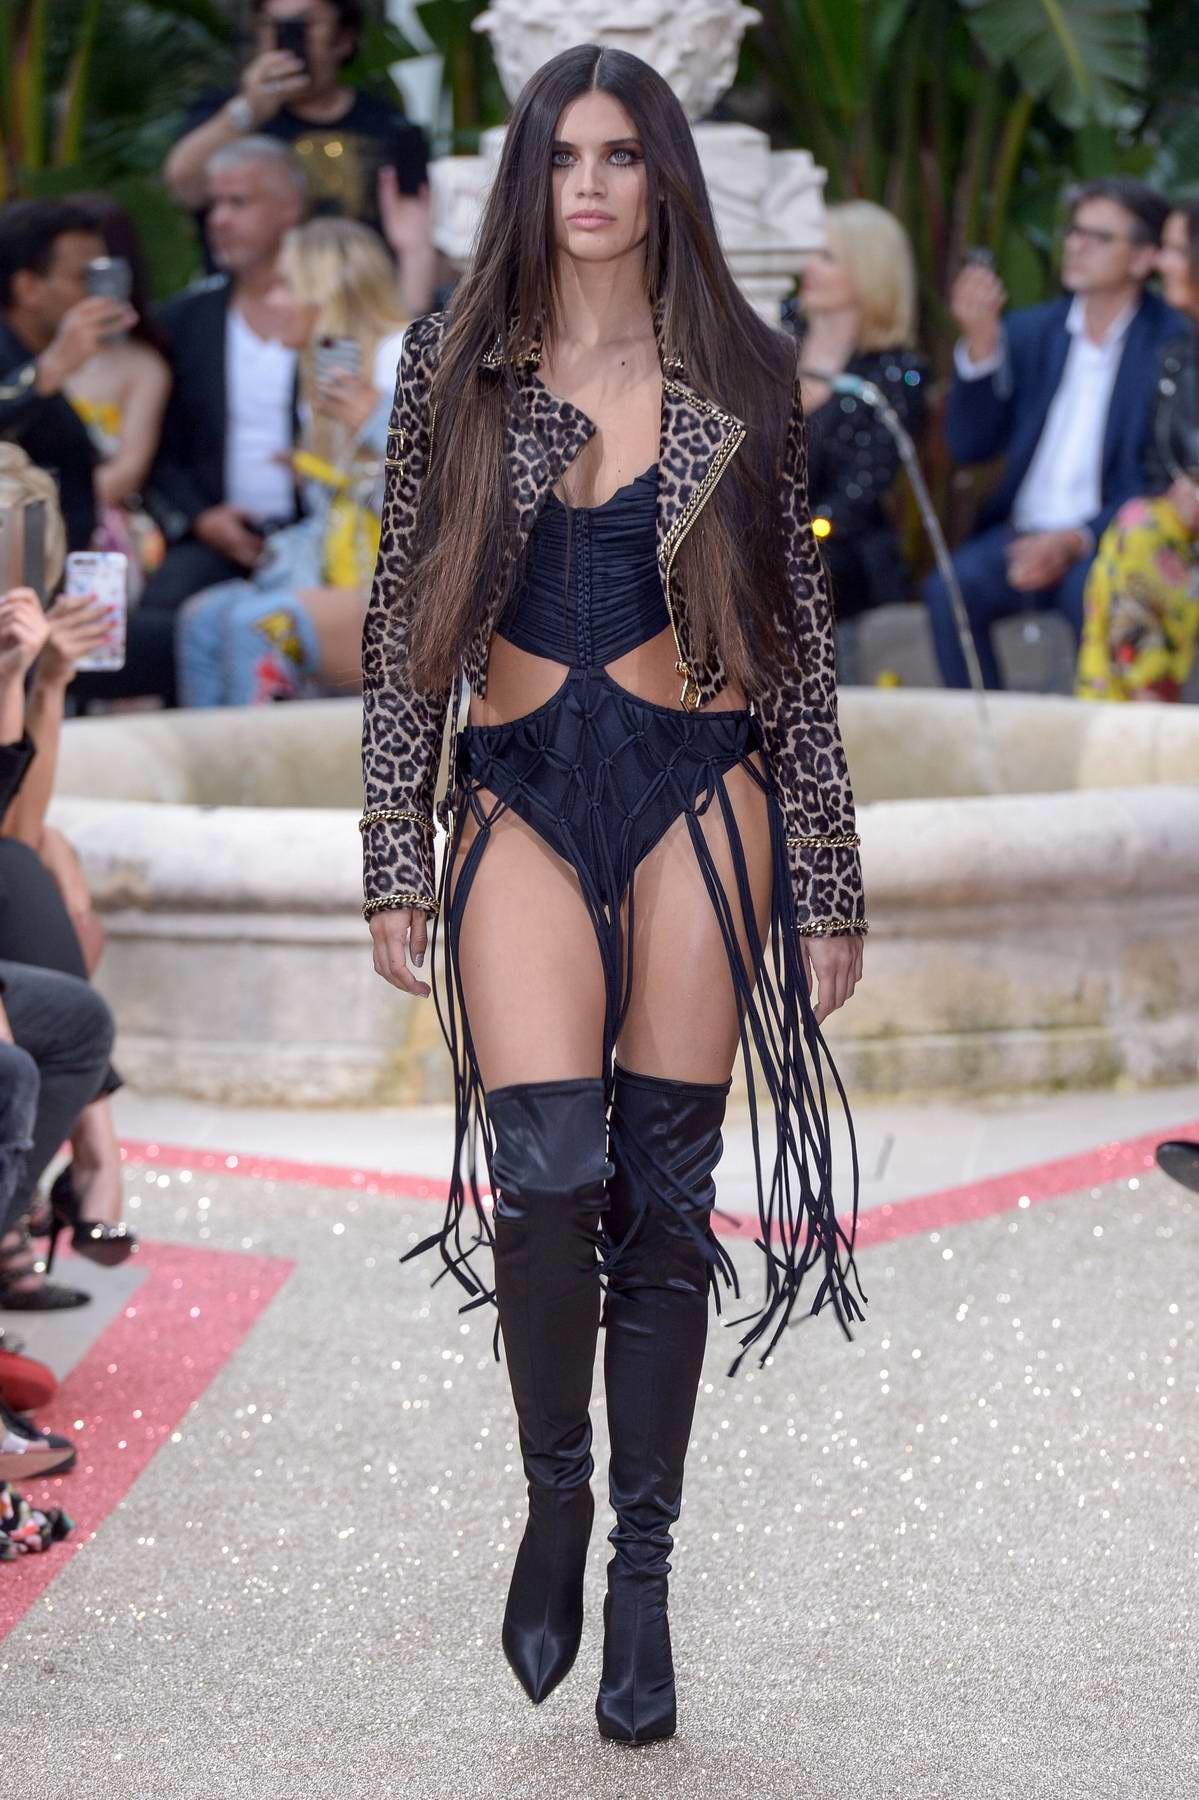 Sara Sampaio walks the runway for Philipp Plein Resort show during the 71st Cannes Film Festival in Cannes, France